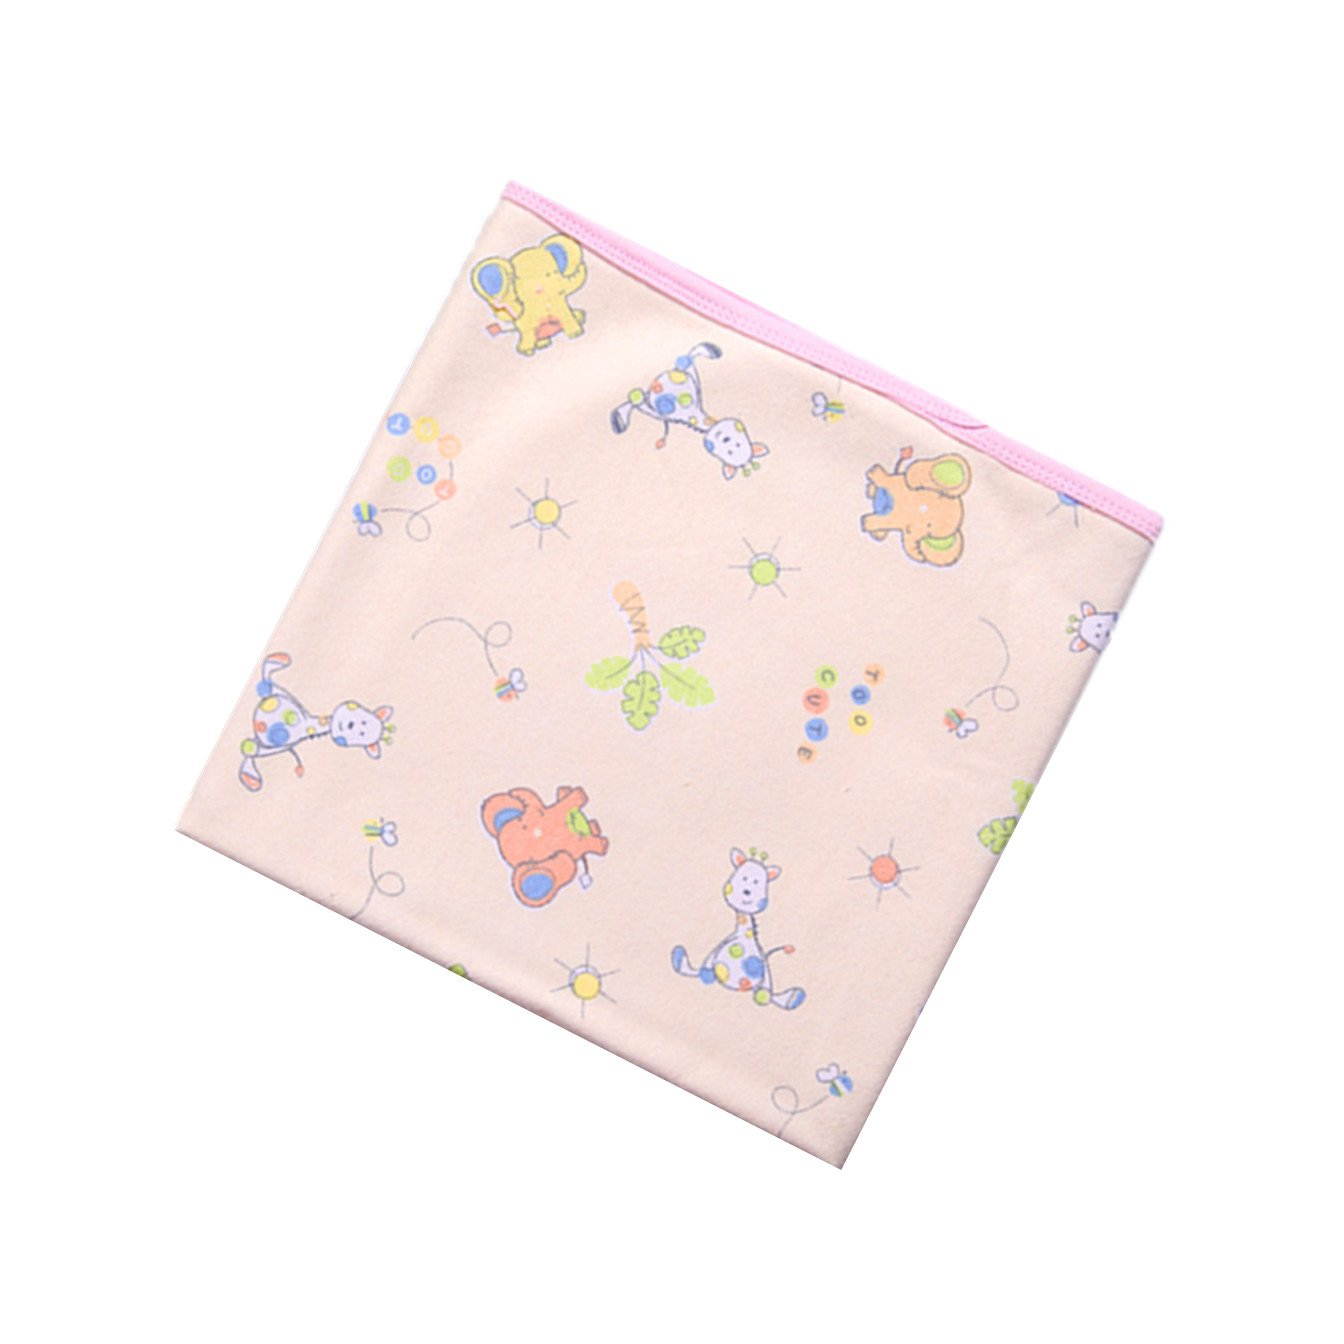 Baby Kid Mattress Cotton Bamboo Fiber Breathable Waterproof Changing Pad Diapering Sheet Protector Menstrual Pads Elephant and Giraffe-Pink, L 27x39inch